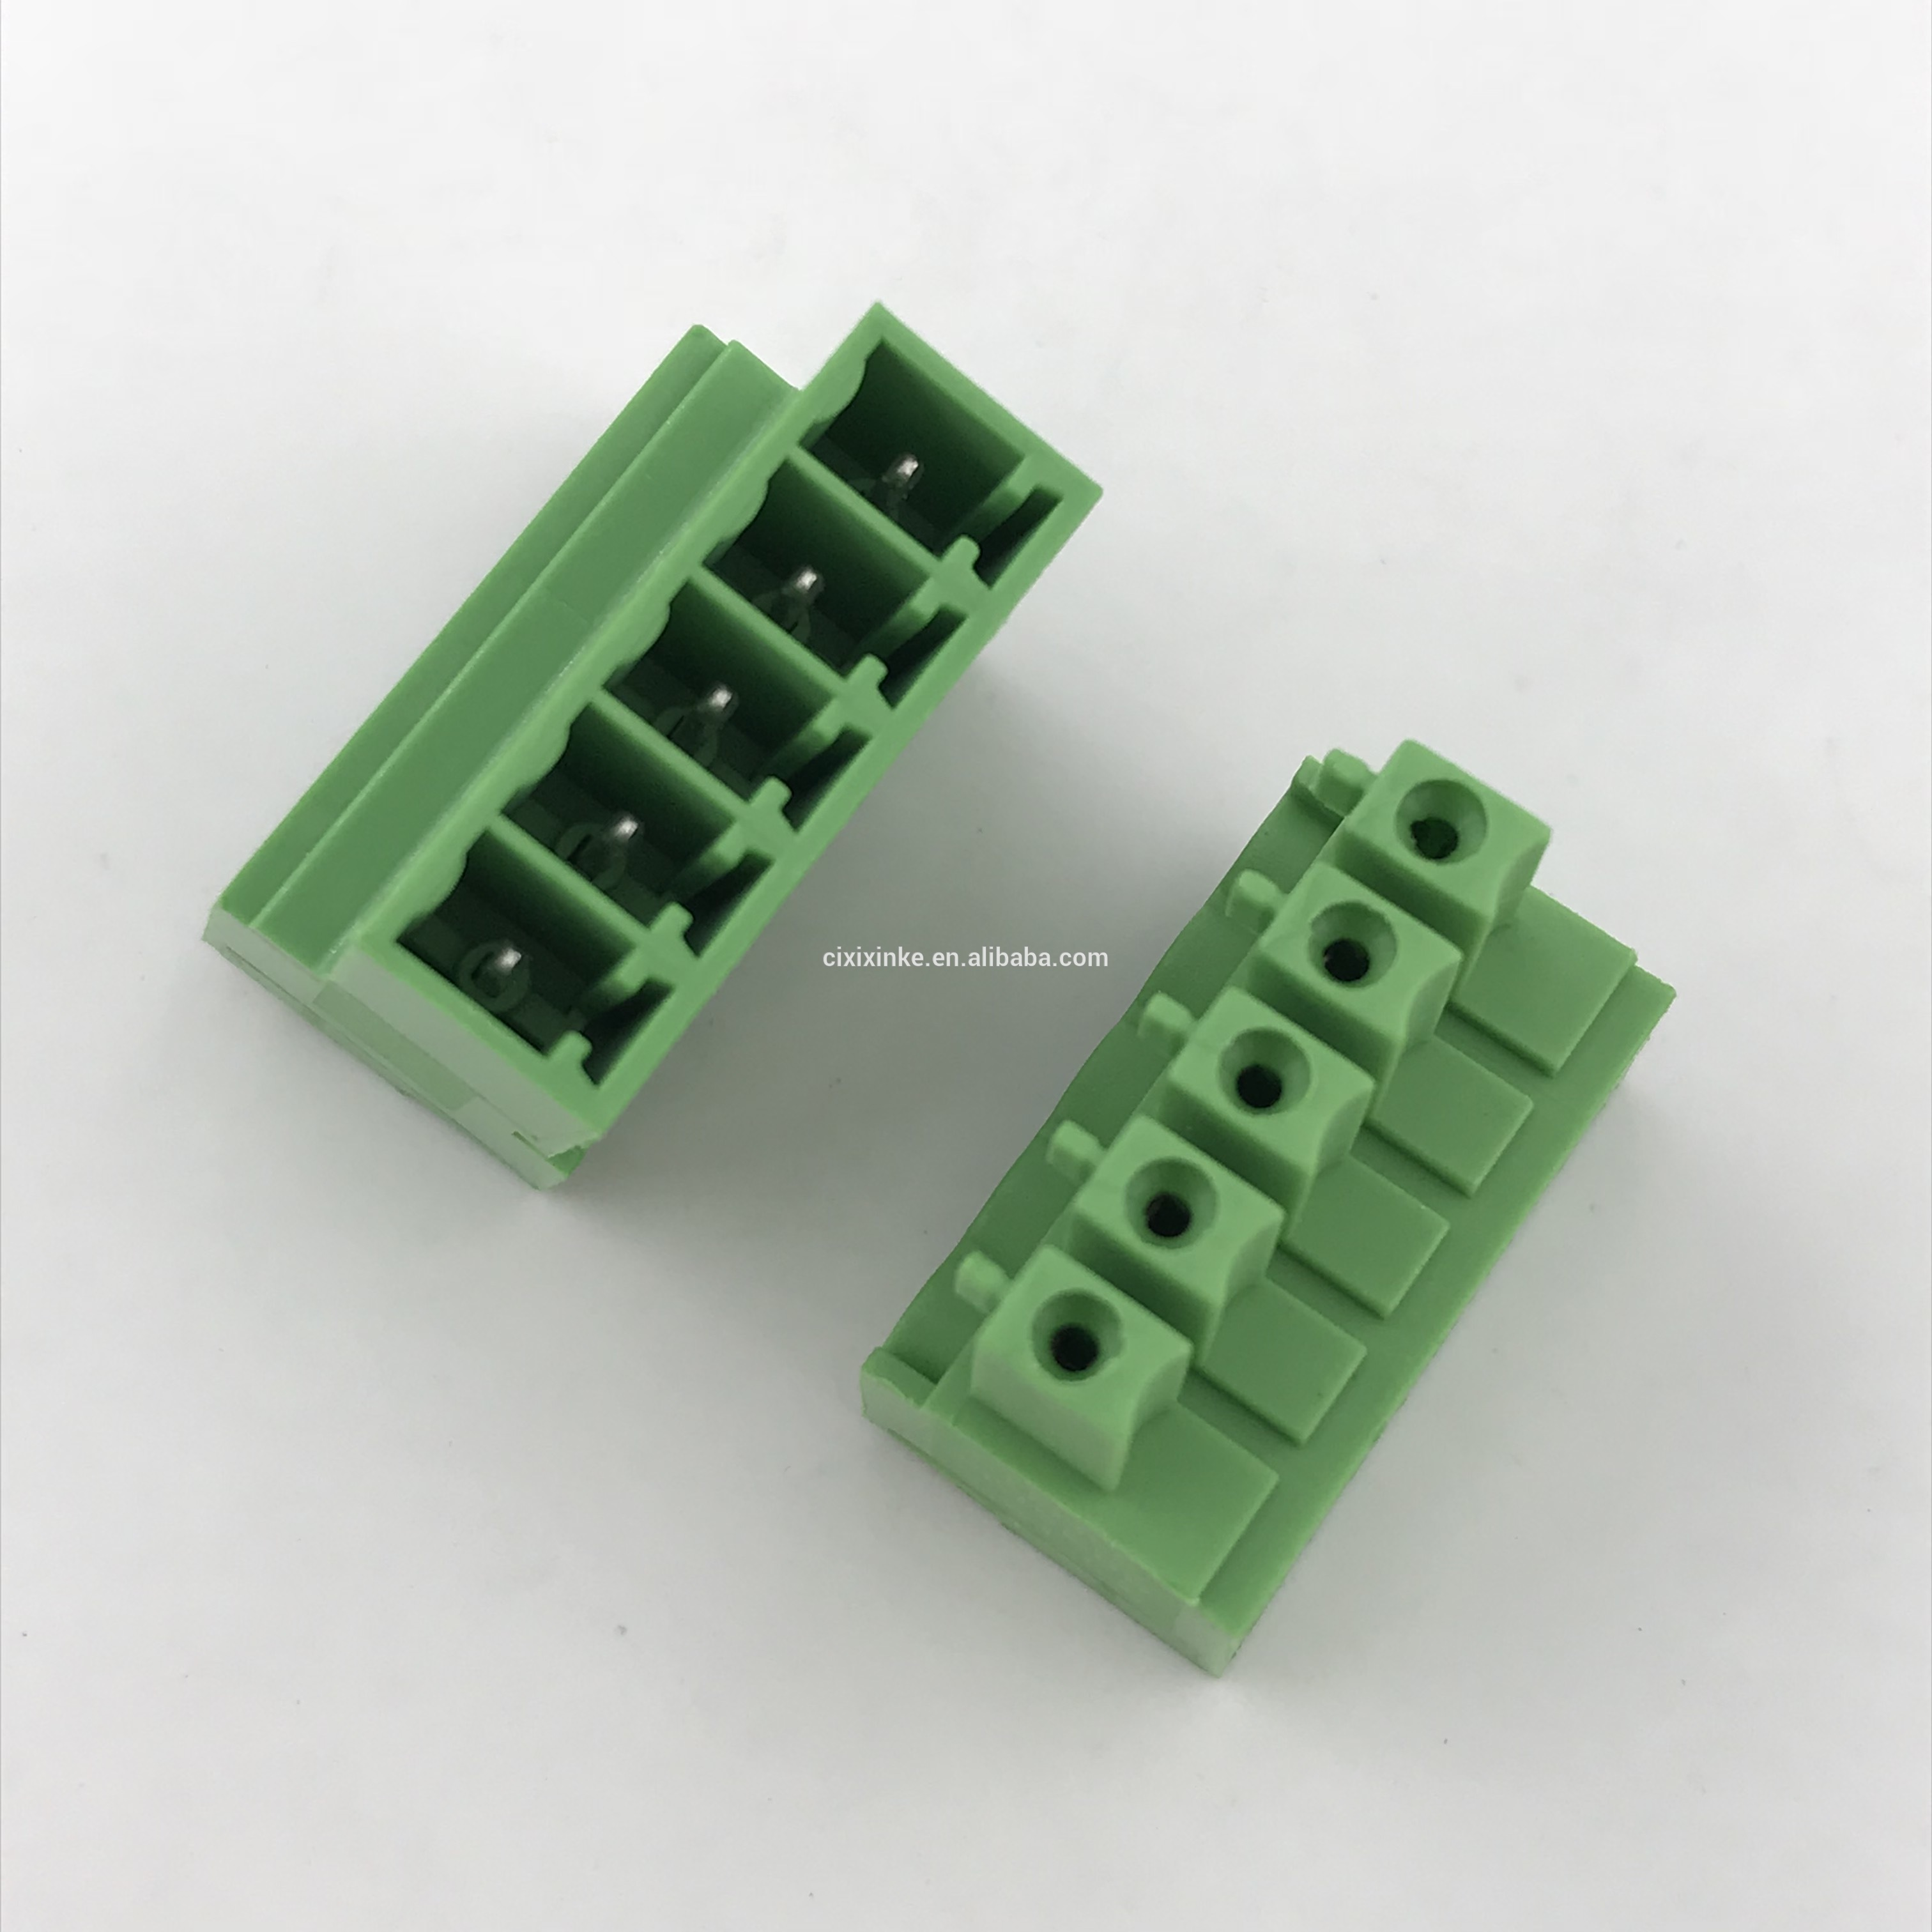 5 contacts of wiring screw pluggable terminal block